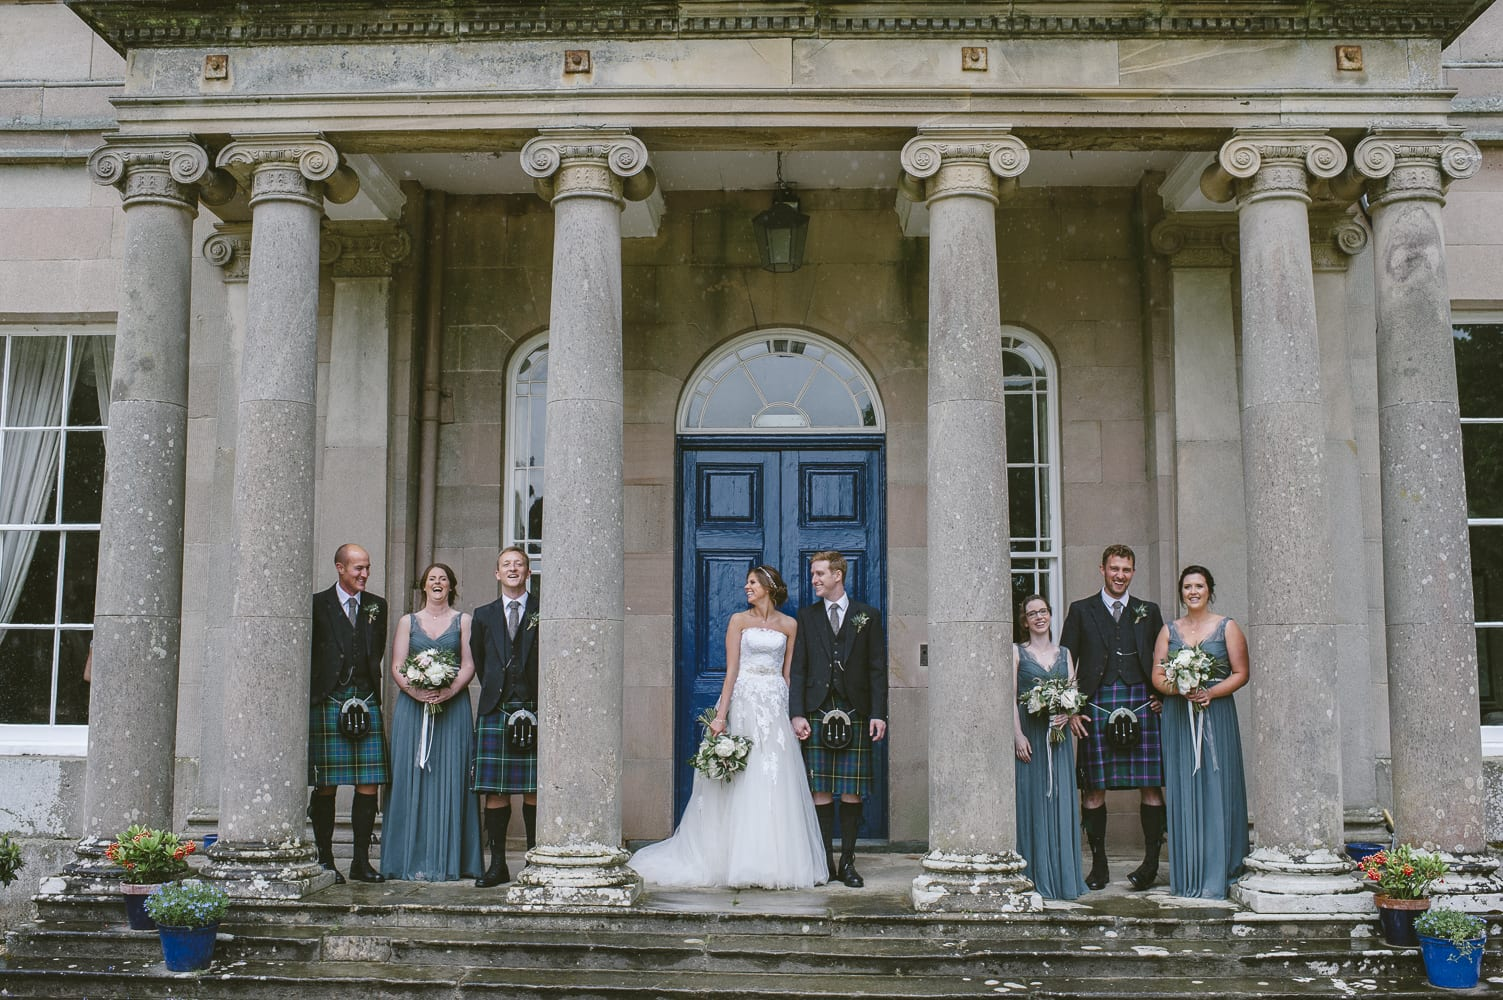 Drenagh Estate wedding photography blog